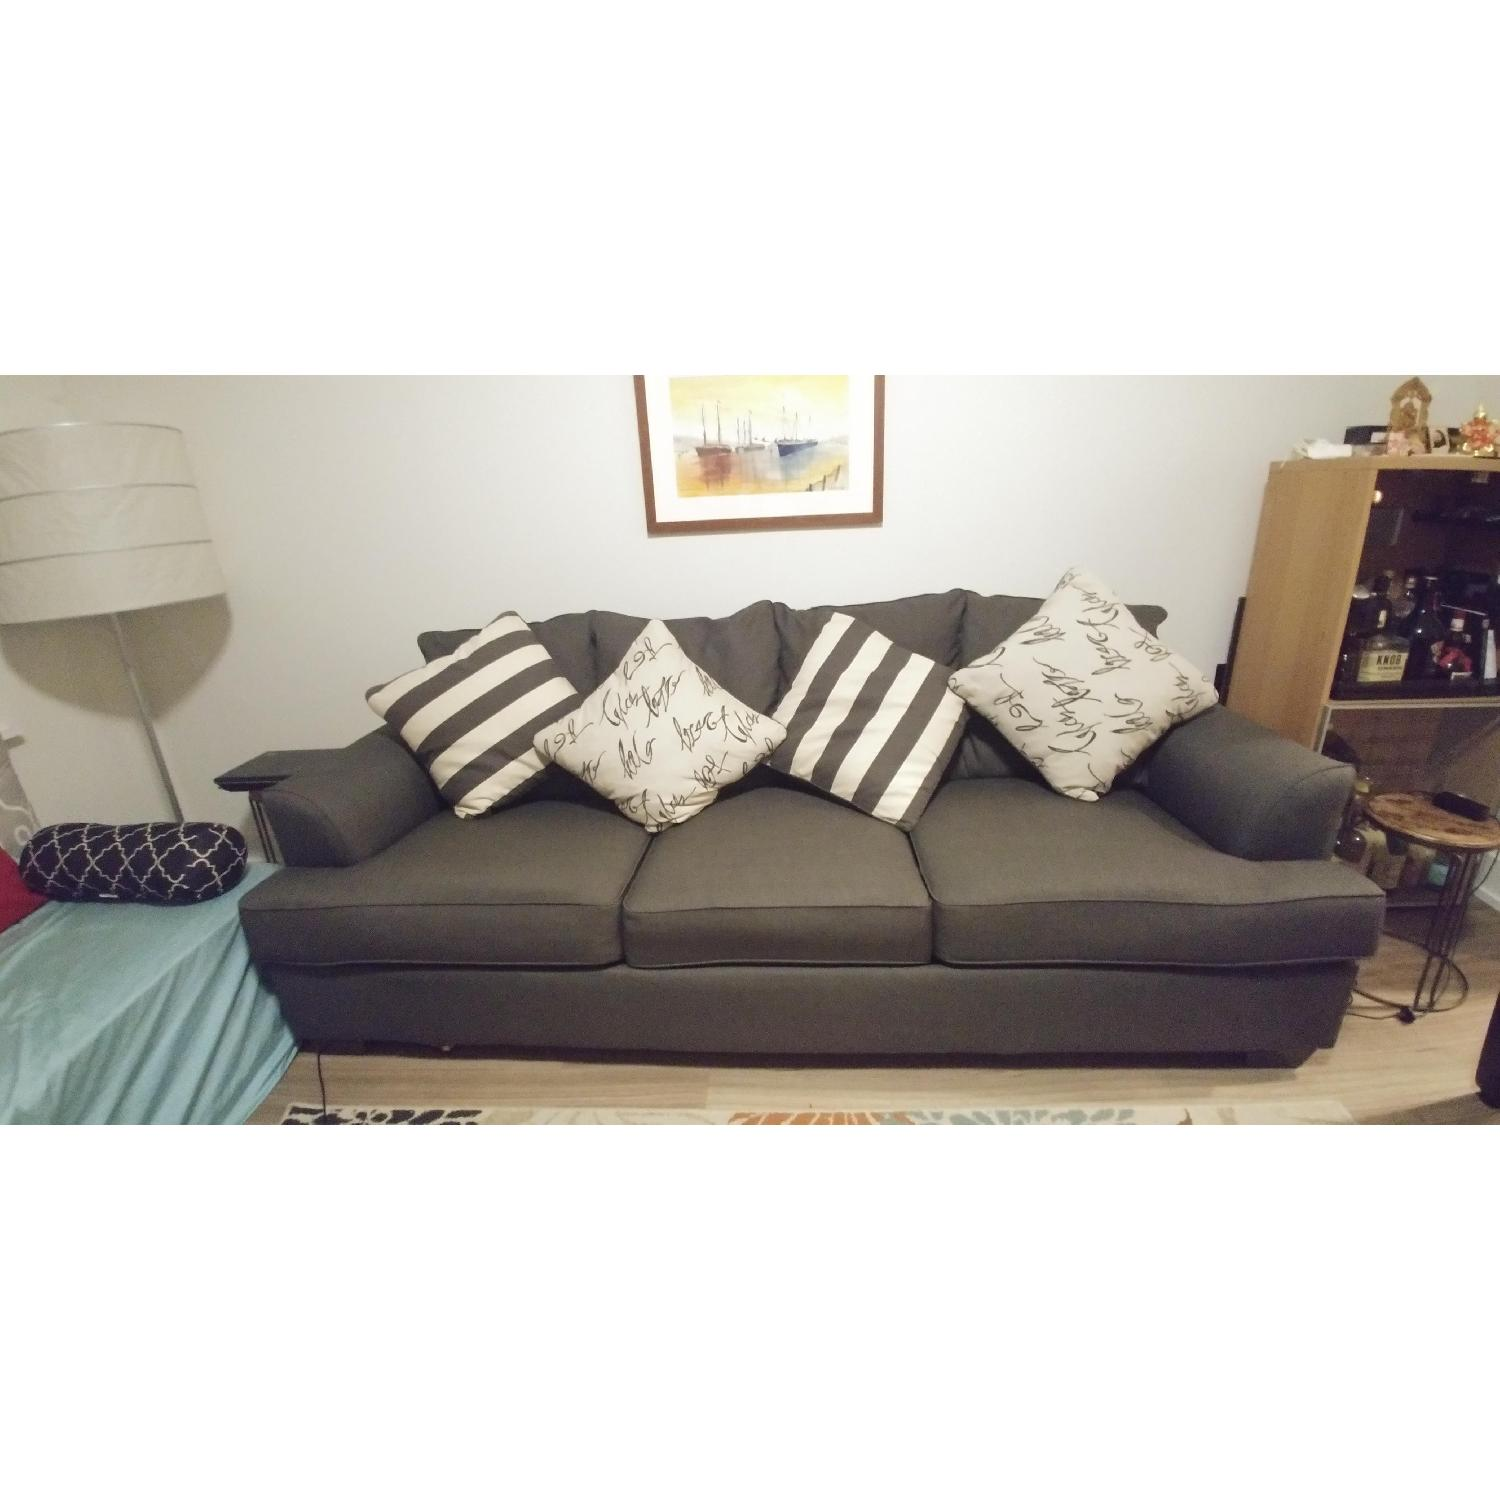 Ashley Furniture Levon Queen Sofa Sleeper